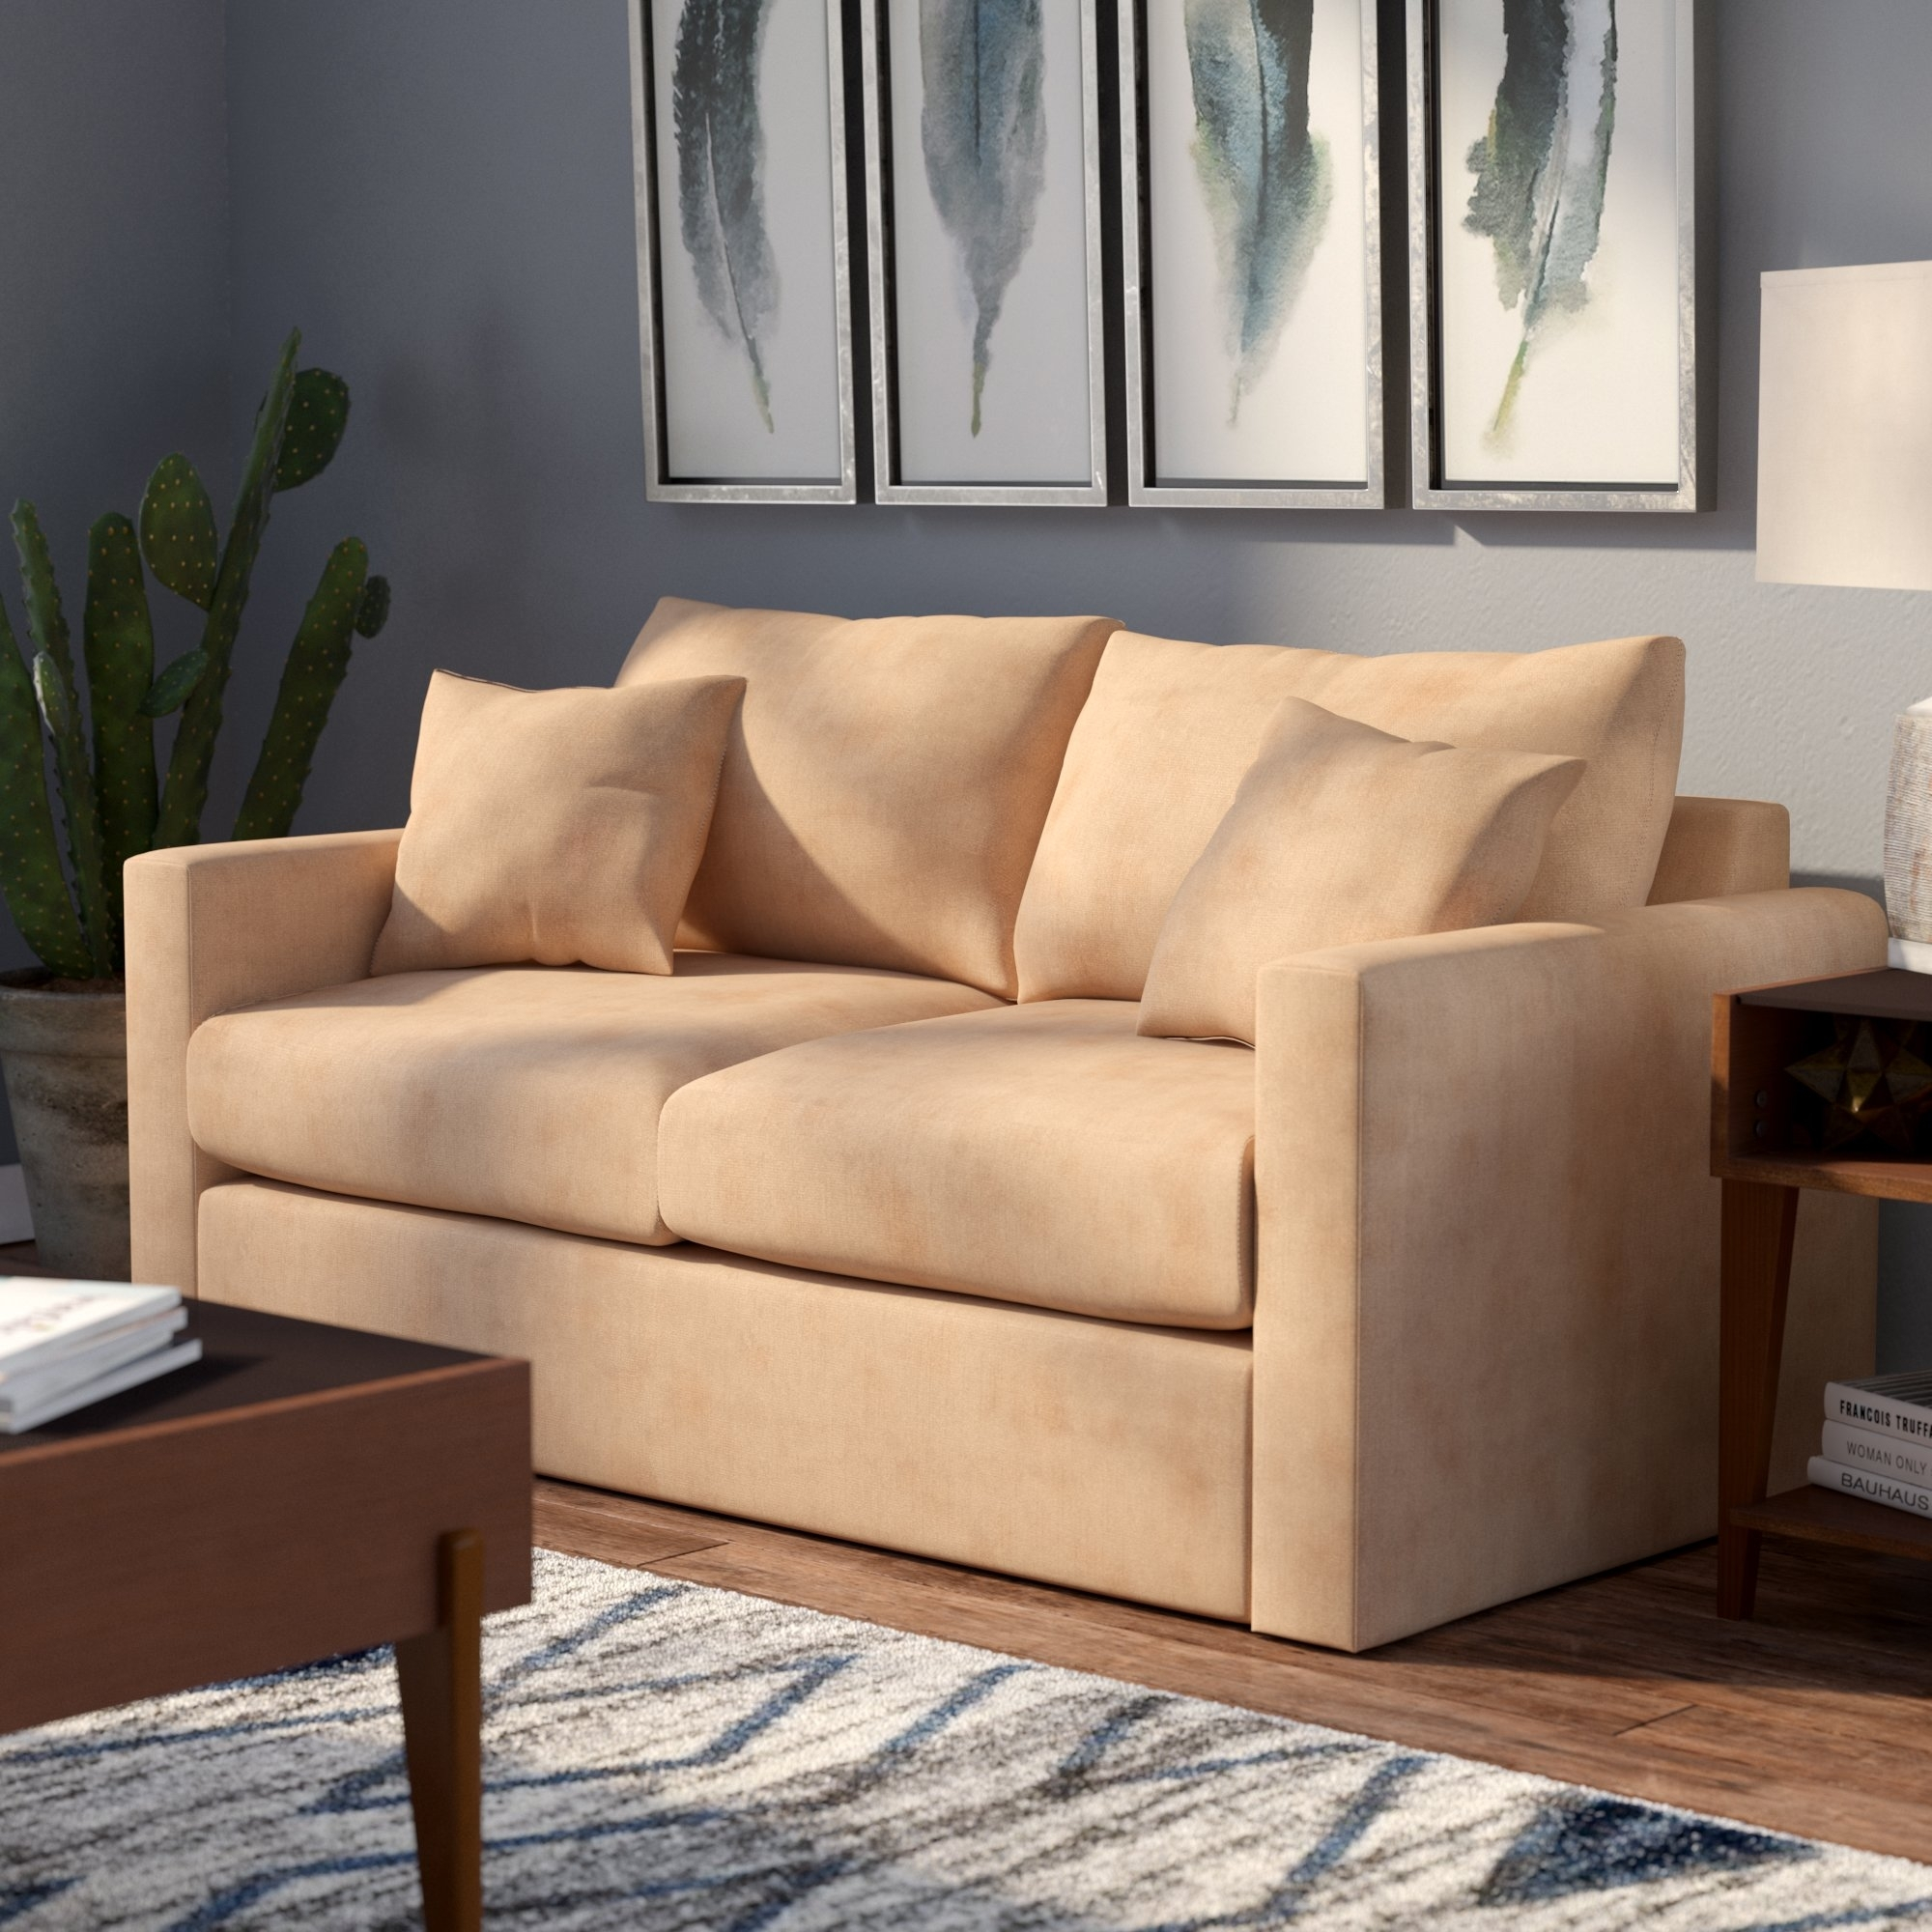 Furniture : Mattress Firm 77057 Sleeper Sectional Sofa For Small In Tuscaloosa Sectional Sofas (Image 3 of 10)